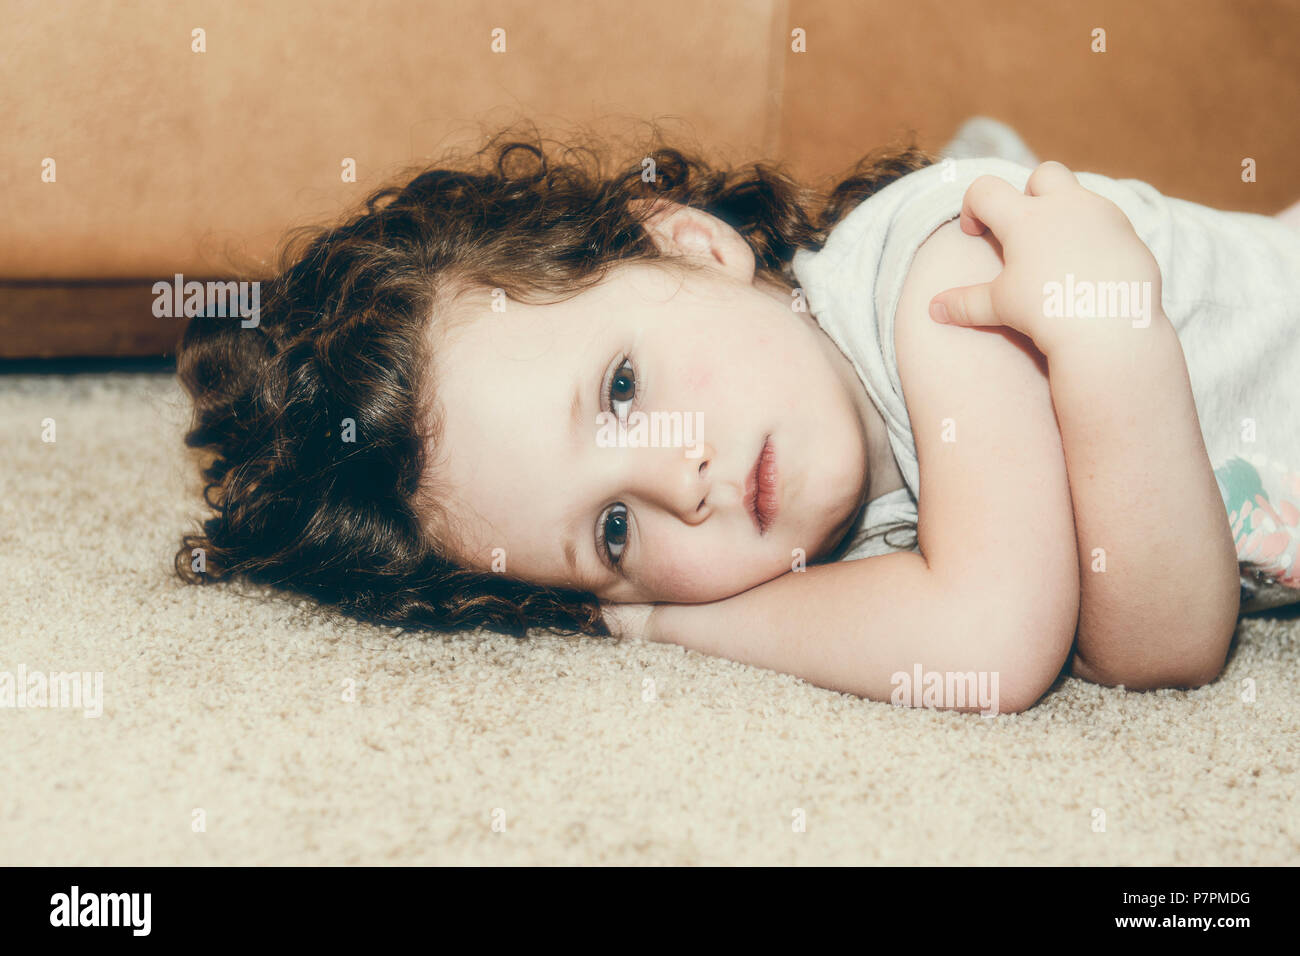 Portrait of Beautiful Three Year Old Looking Sad & Solemn - Stock Image